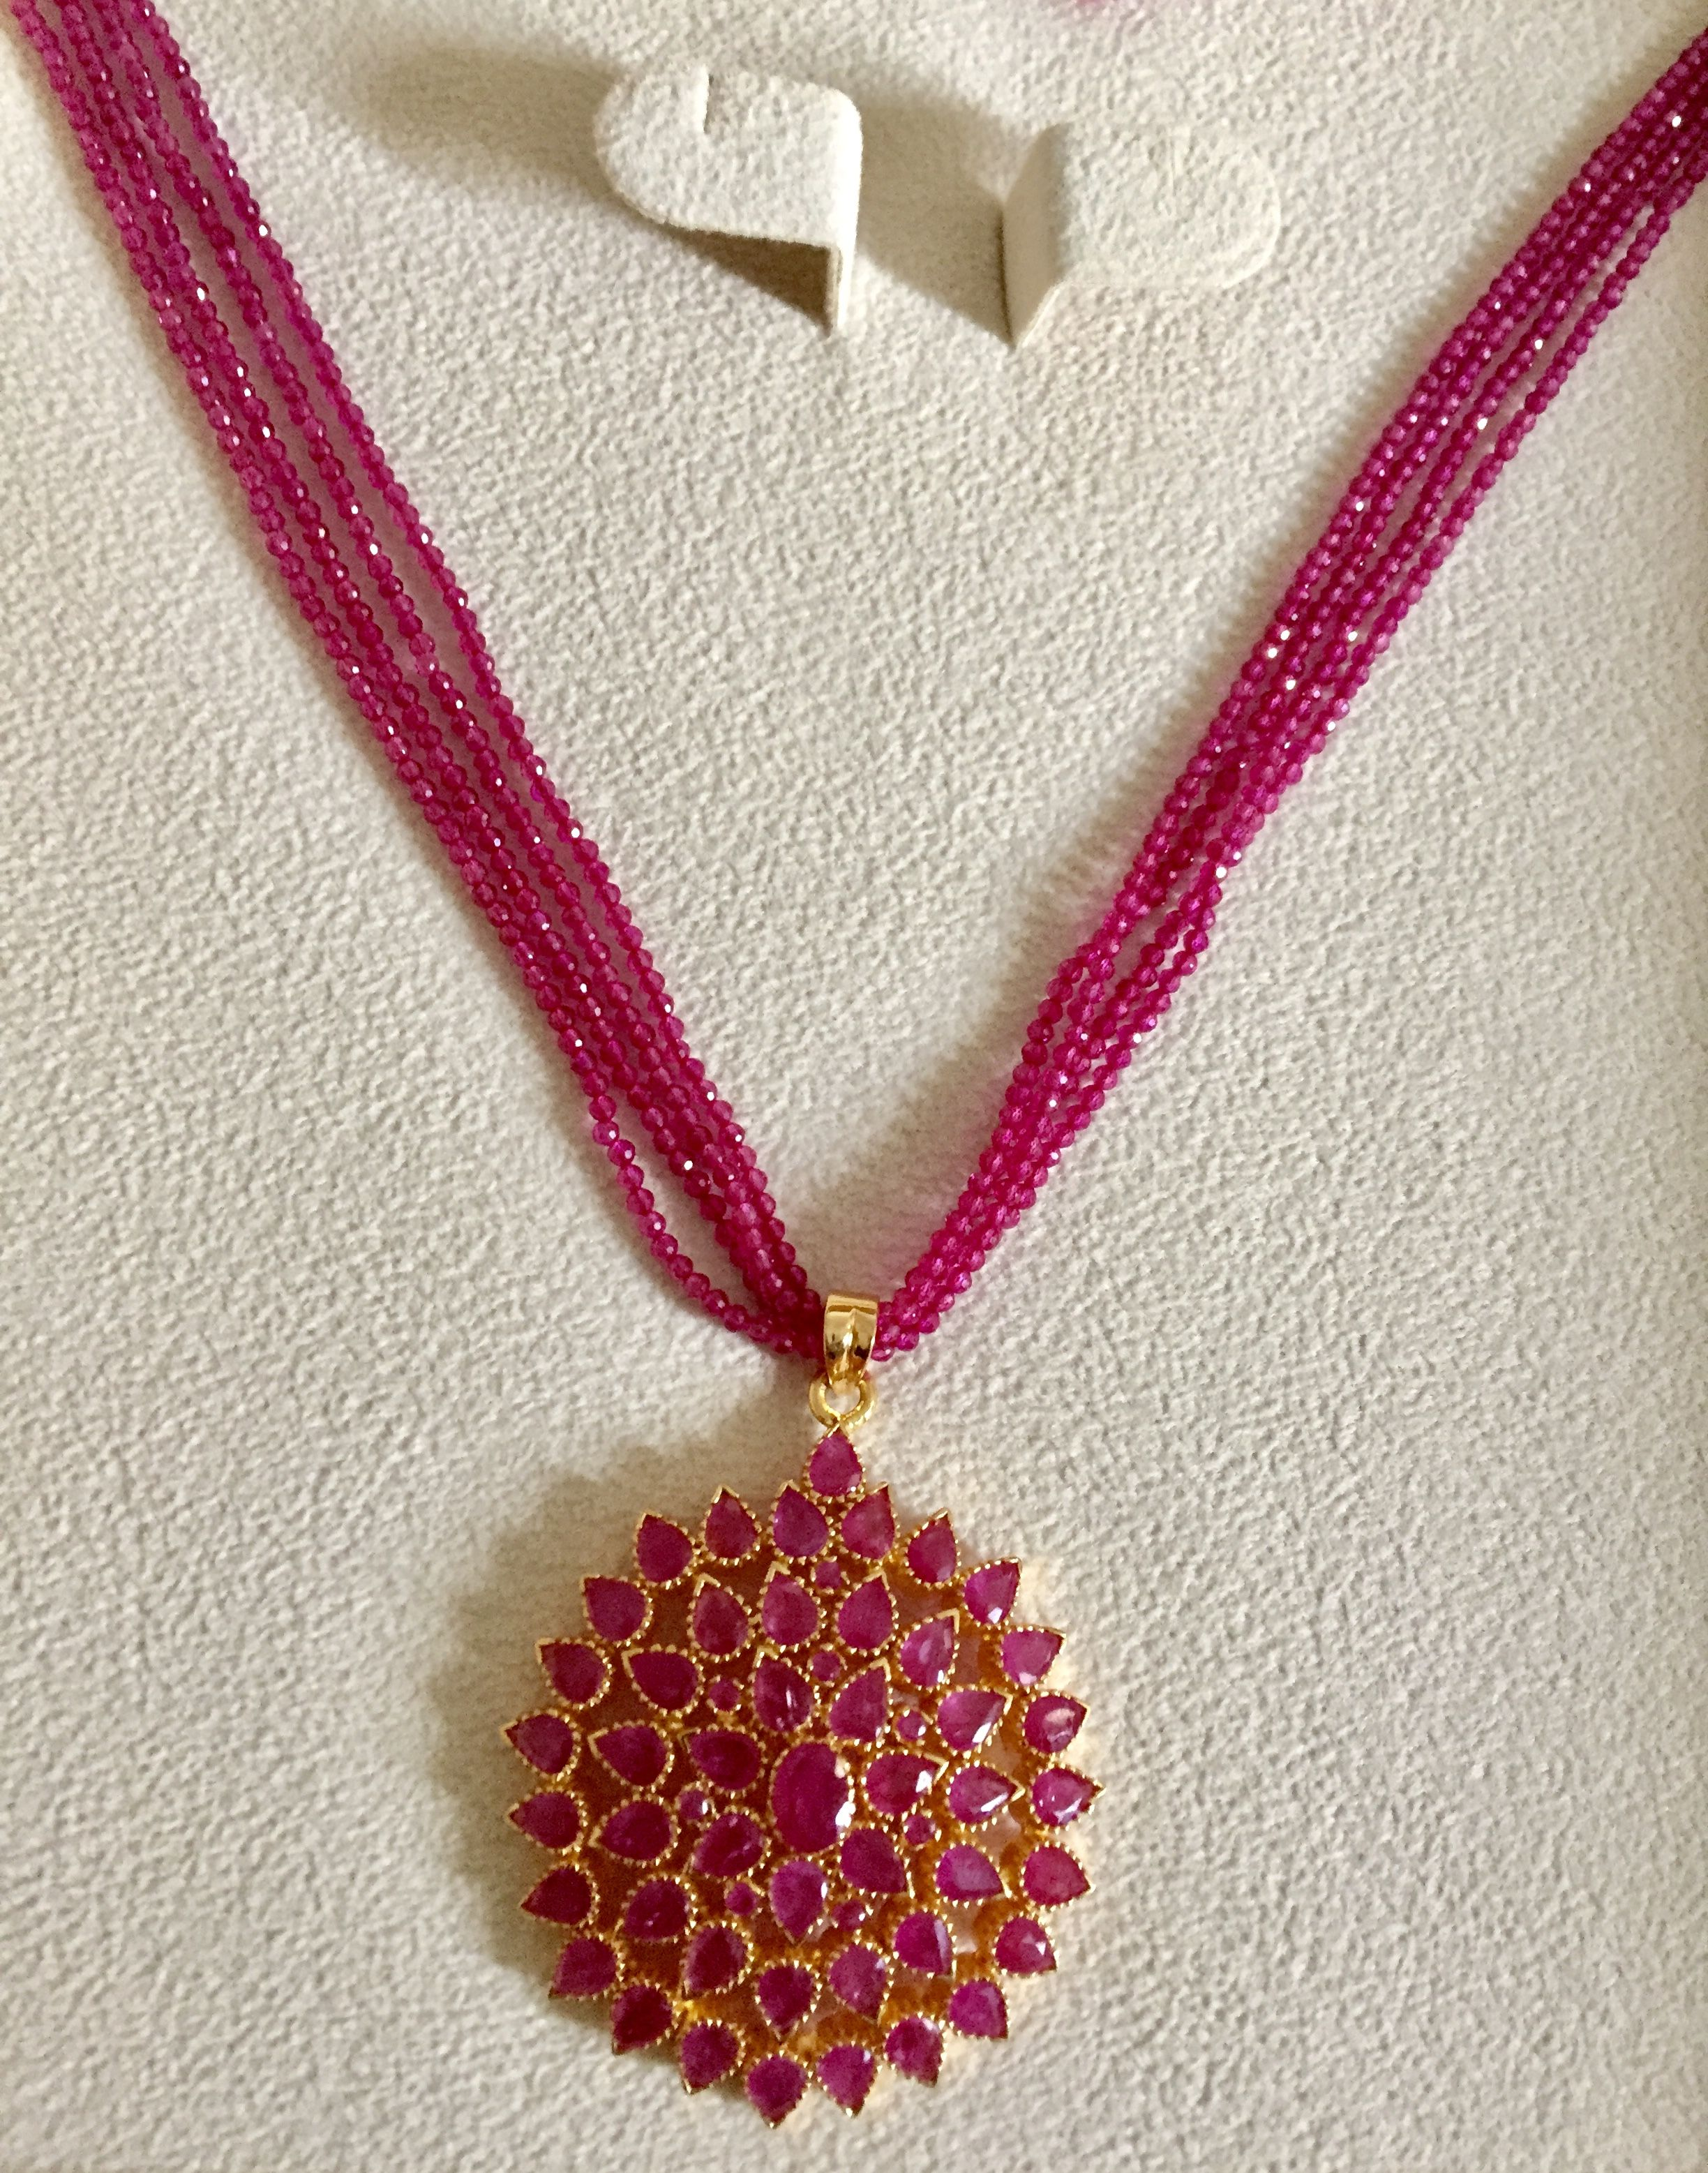 Ruby beads and pendant. #ruby #necklace #gold #inidian #jewels #madebyme | Ruby  beads, Beaded jewelry designs, Jewelry design necklace